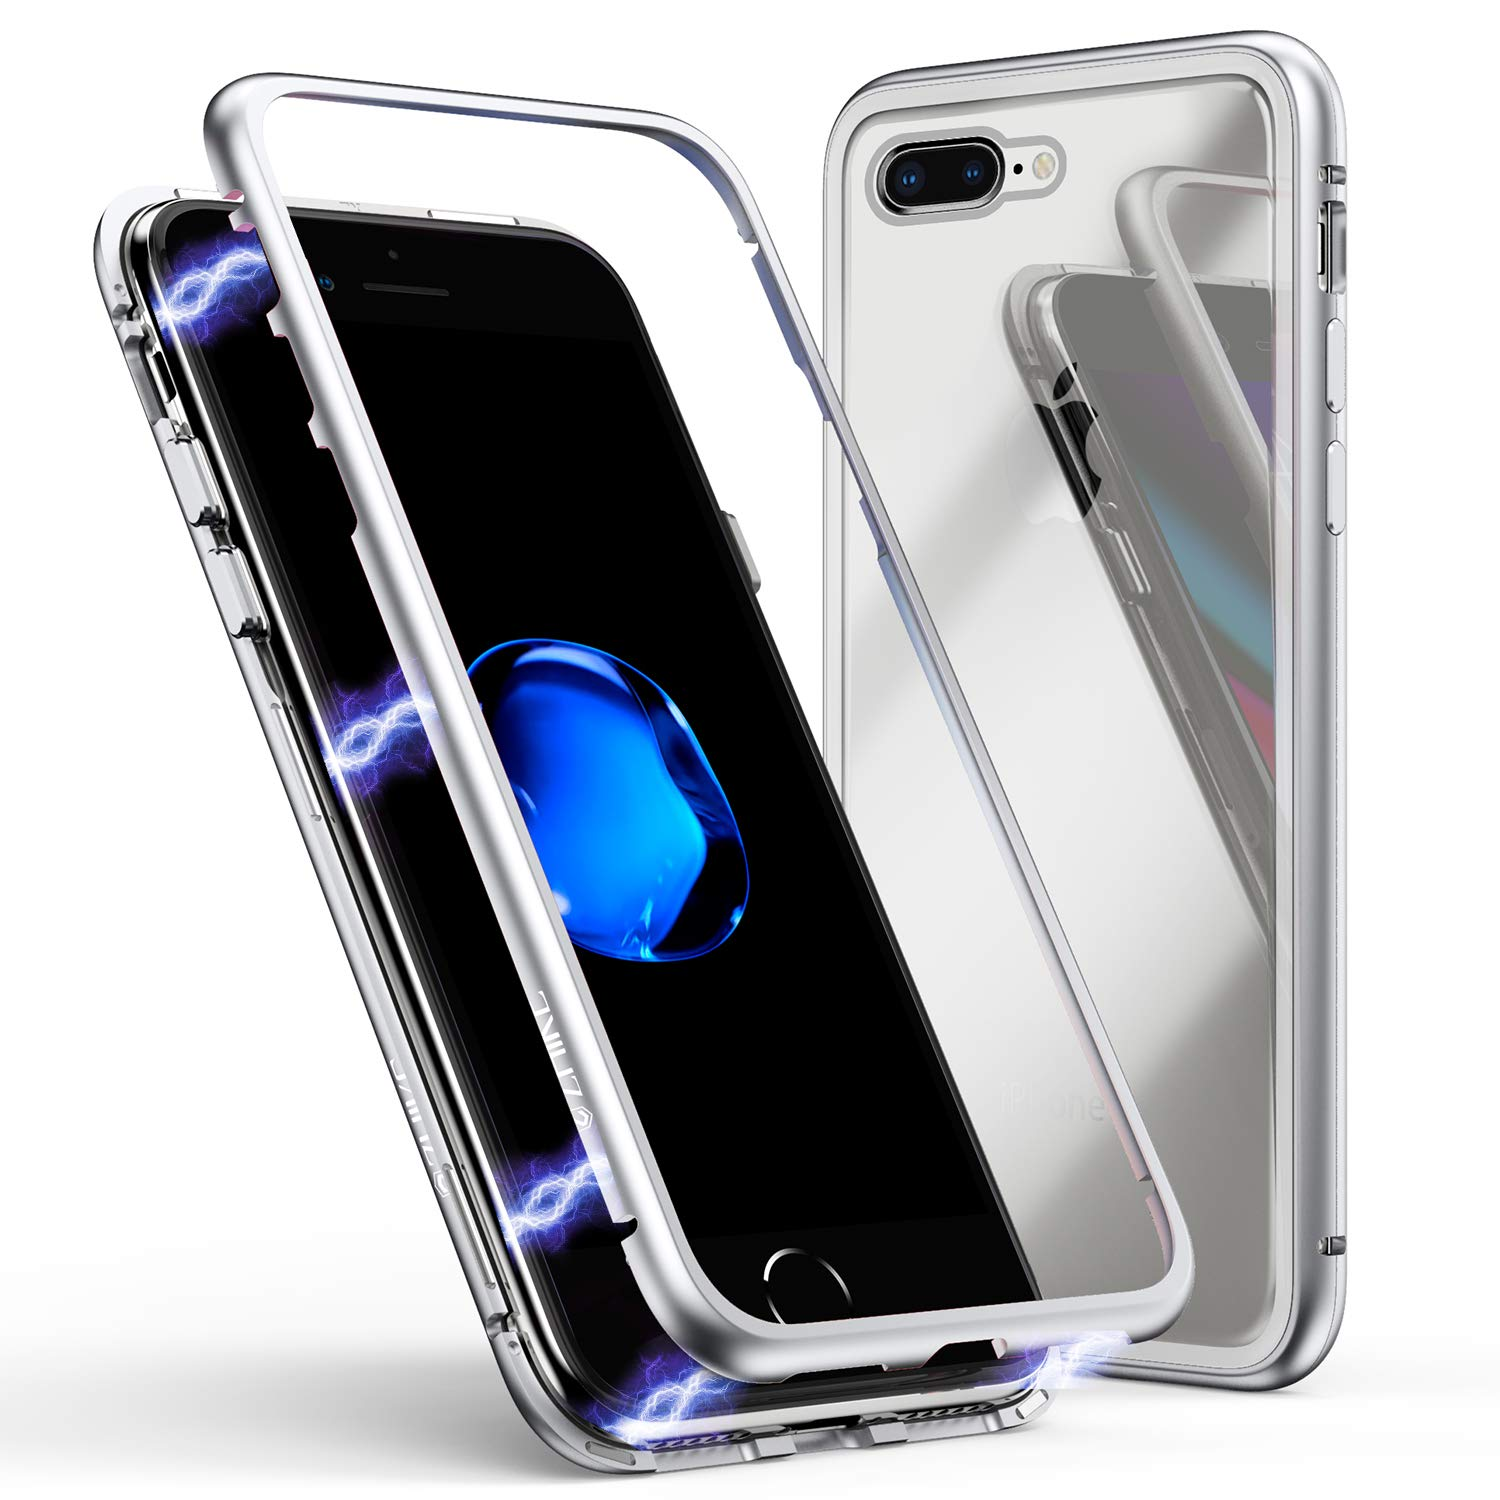 iPhone 8 Plus Case,iPhone 7 Plus Case, ZHIKE Magnetic Adsorption Case Ultra Slim Metal Frame Tempered Glass Back with Built-in Magnet Flip Cover for ...